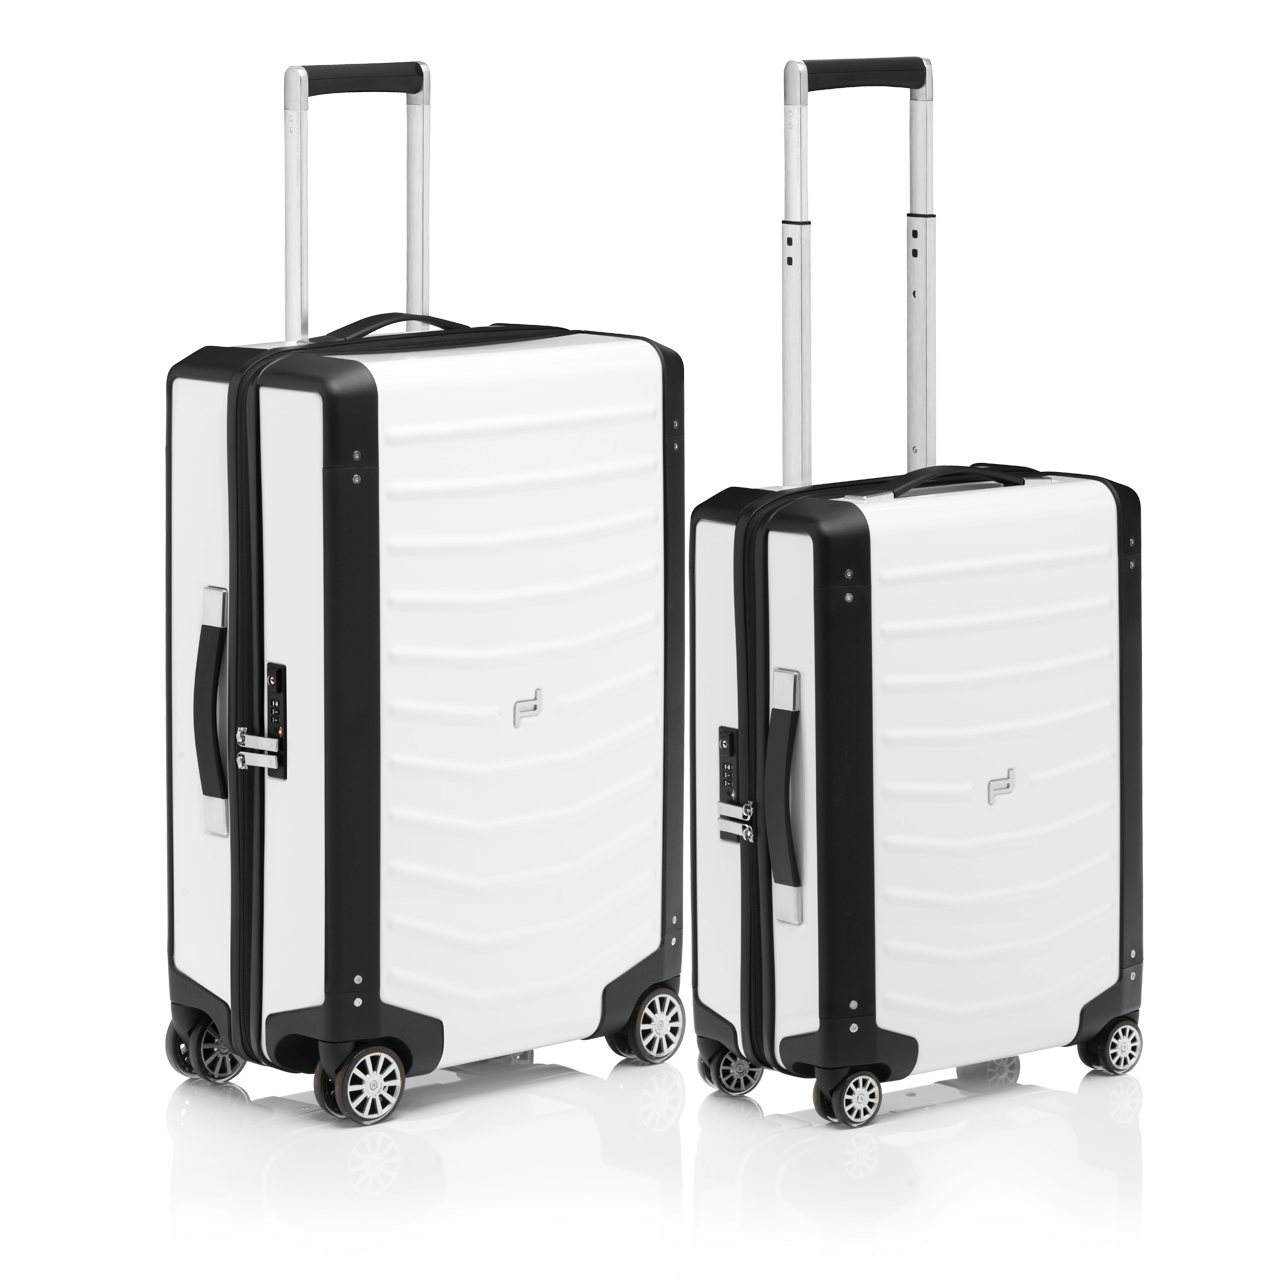 ROADSTER HARDCASE SERIES SET S/M - фото 1